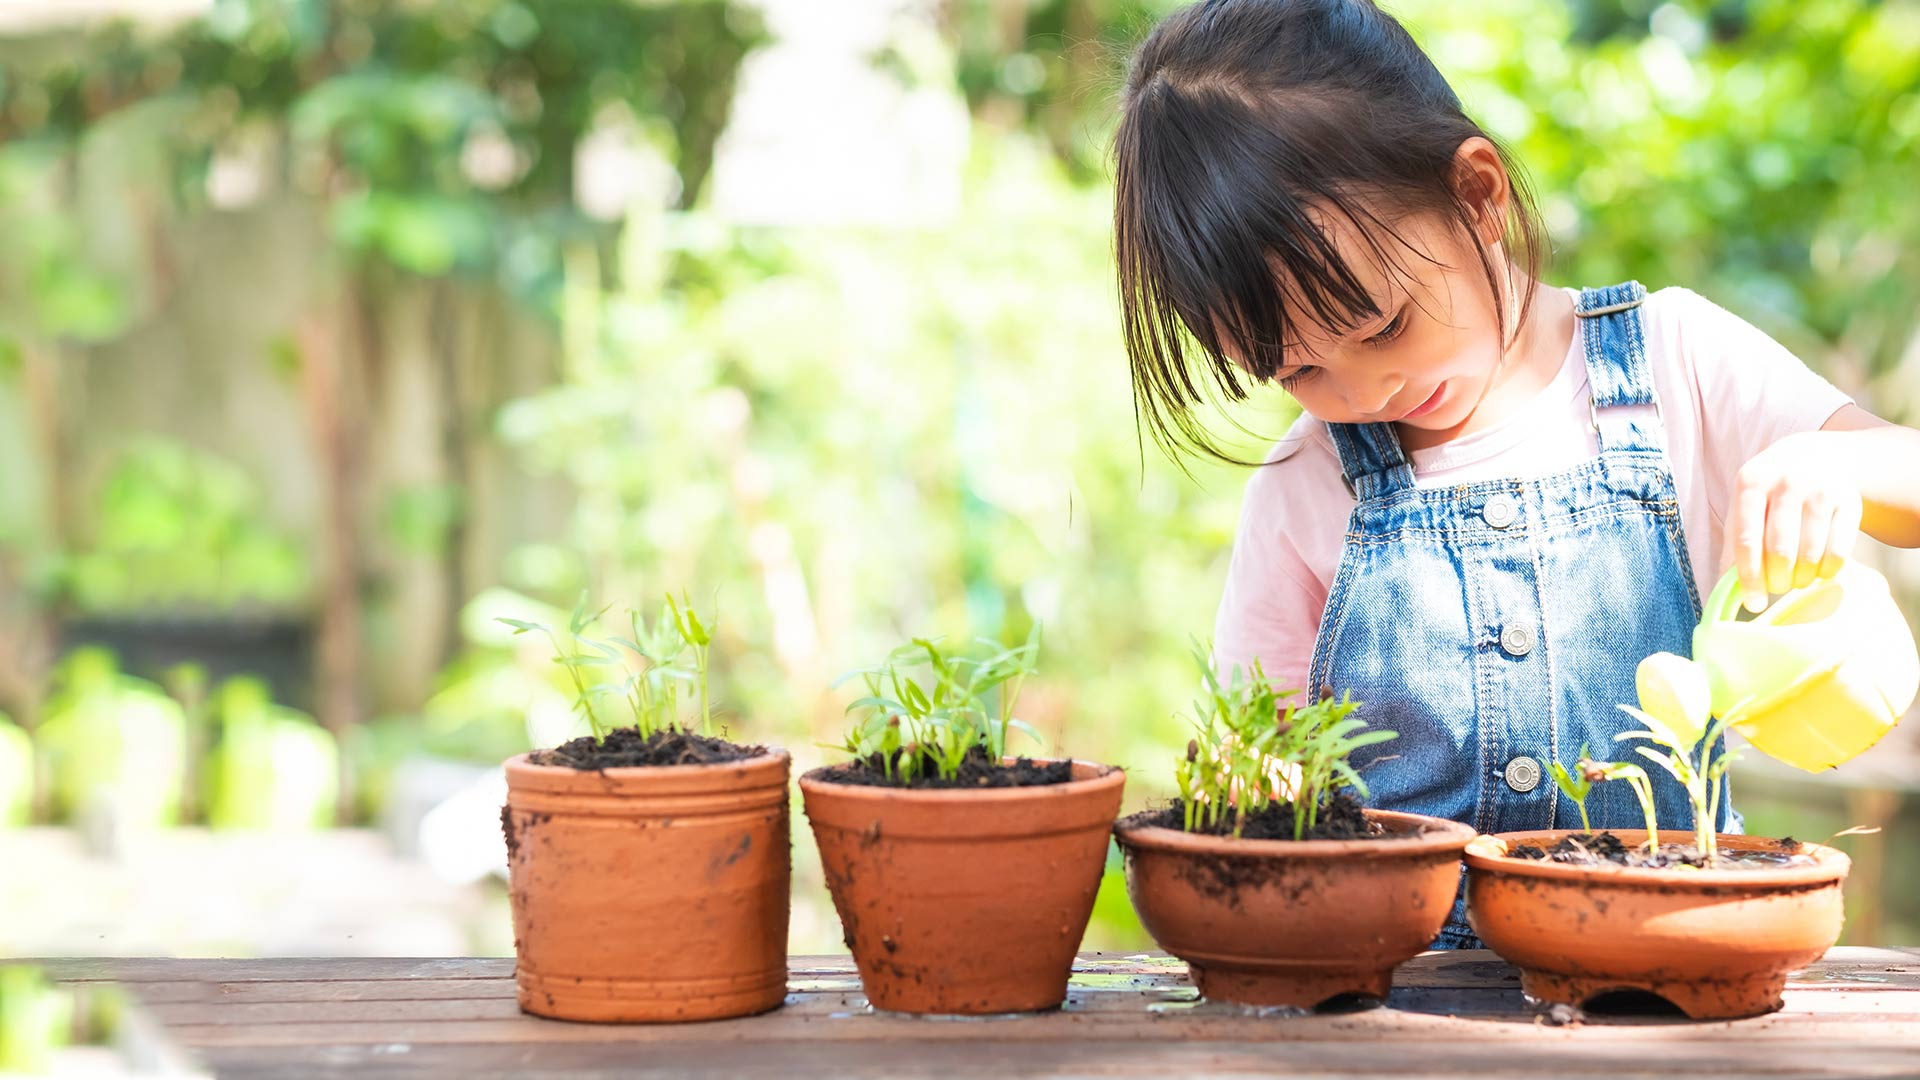 Girl watering plants in a Kindergarten